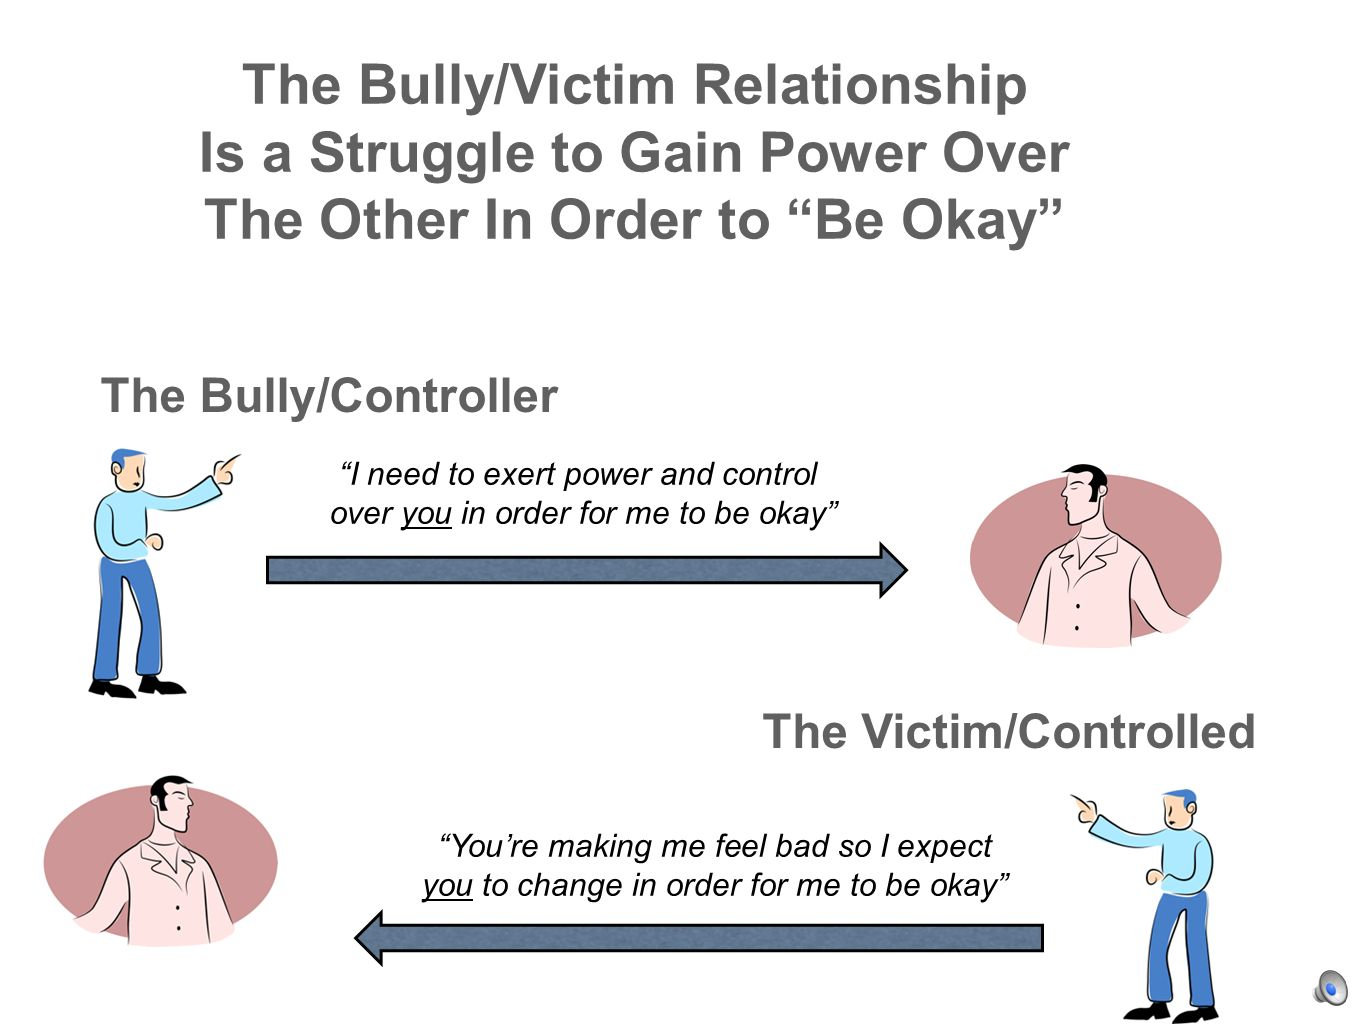 The Bully/Victim Relationship Is a Struggle to Gain Power Over The Other In Order to Be Okay I need to exert power and control over you in order for me to be okay Youre making me feel bad so I expect you to change in order for me to be okay The Victim/Controlled The Bully/Controller